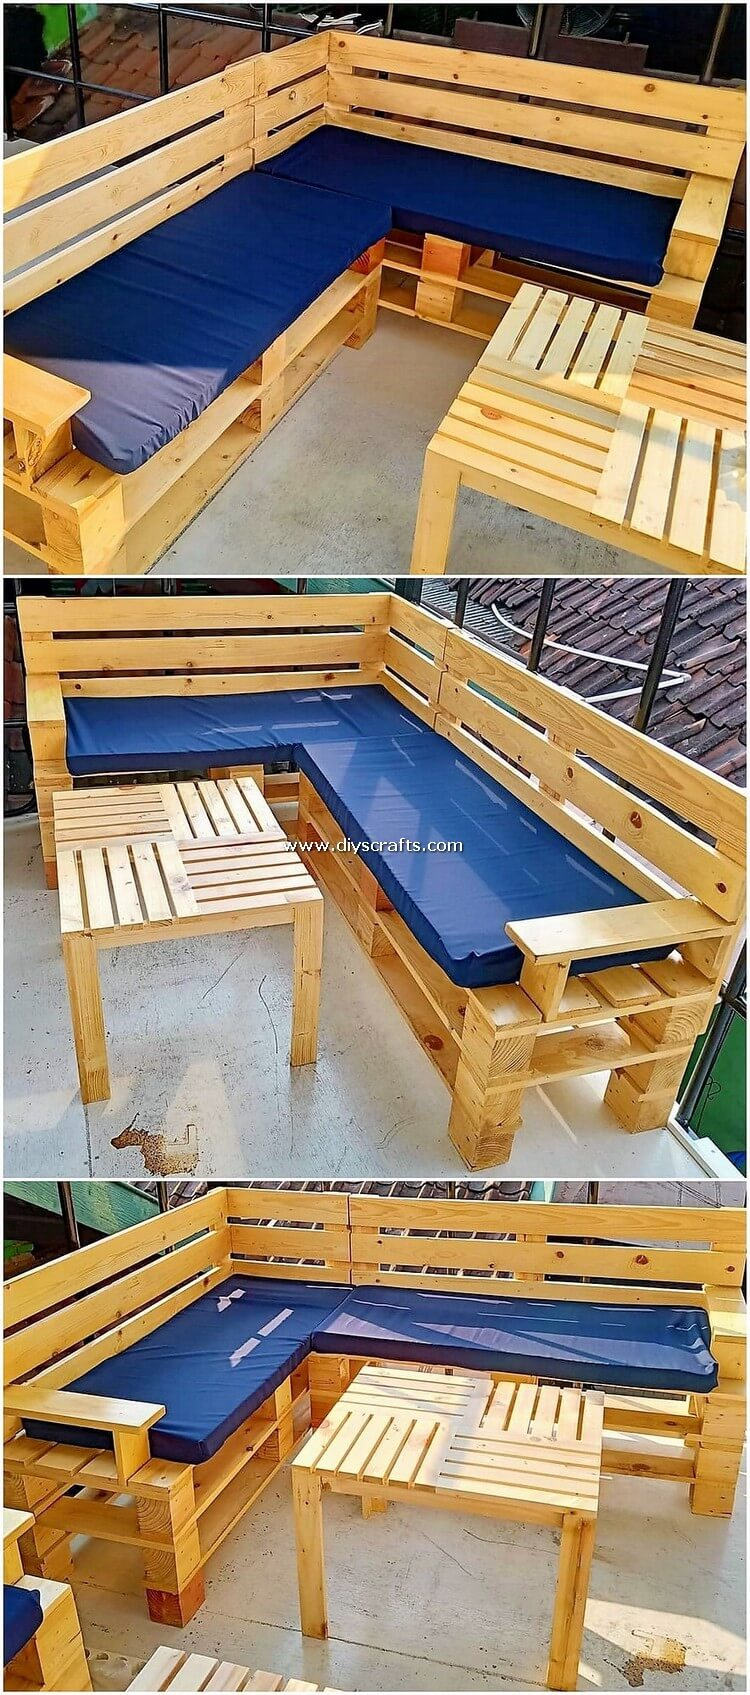 Pallet-Wood-Couch-and-Table-1